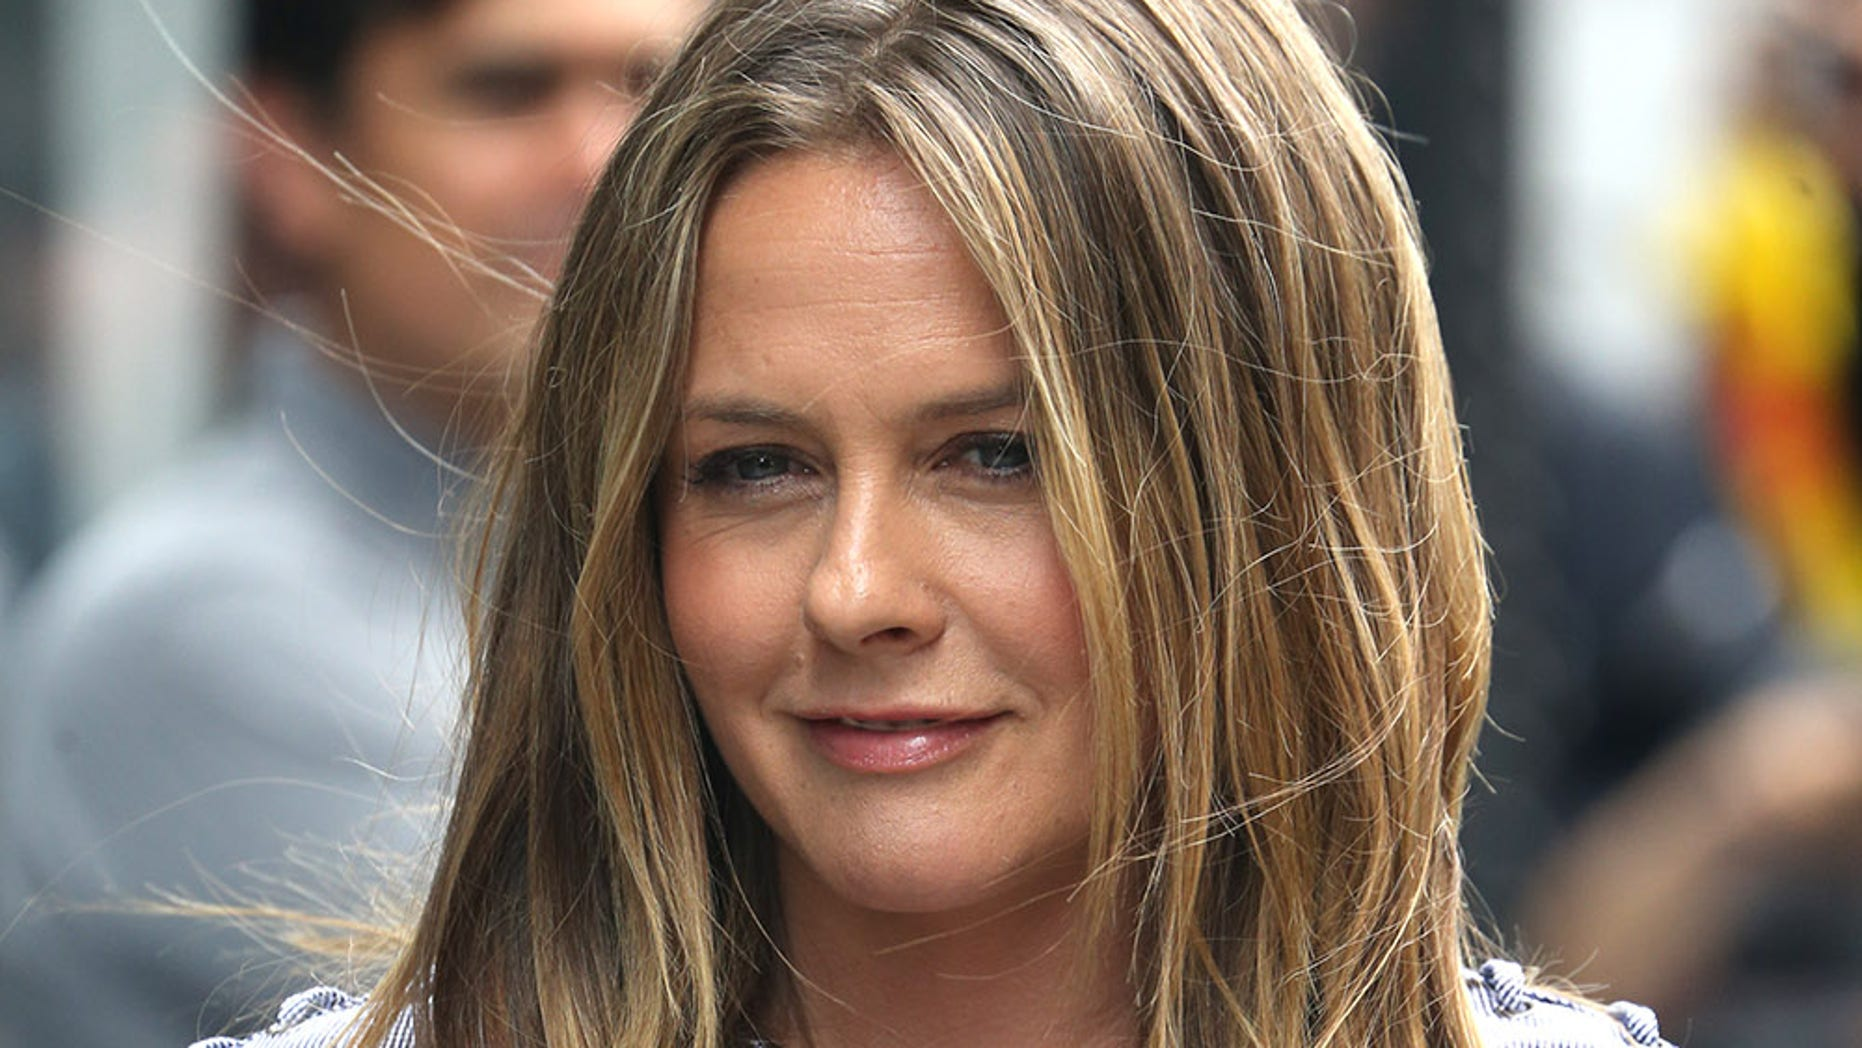 Actress Alicia Silverstone revealed she's dating again after her divorce.